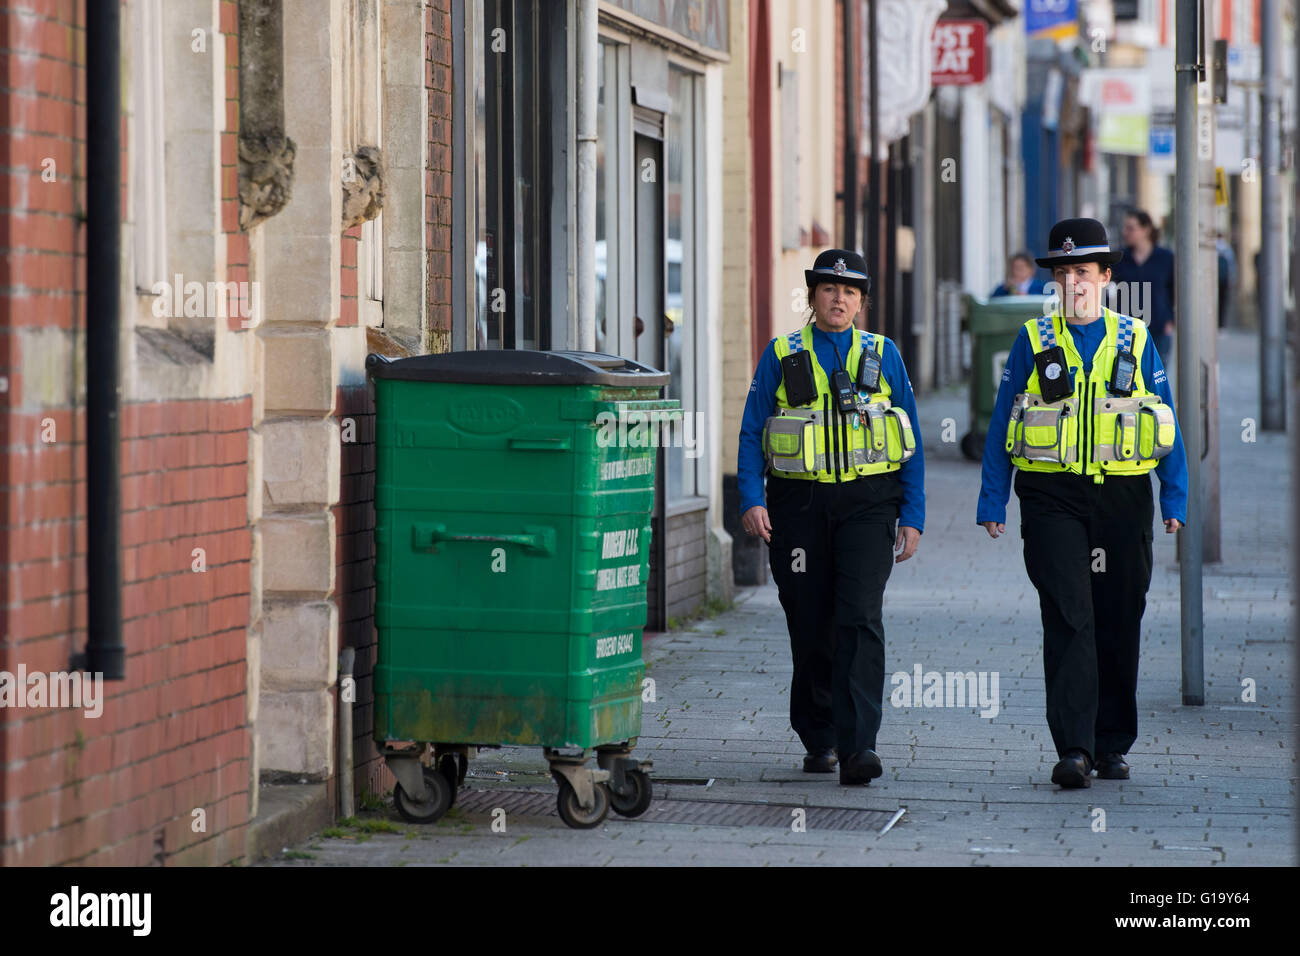 Female police officers on patrol in Maesteg, south Wales. - Stock Image